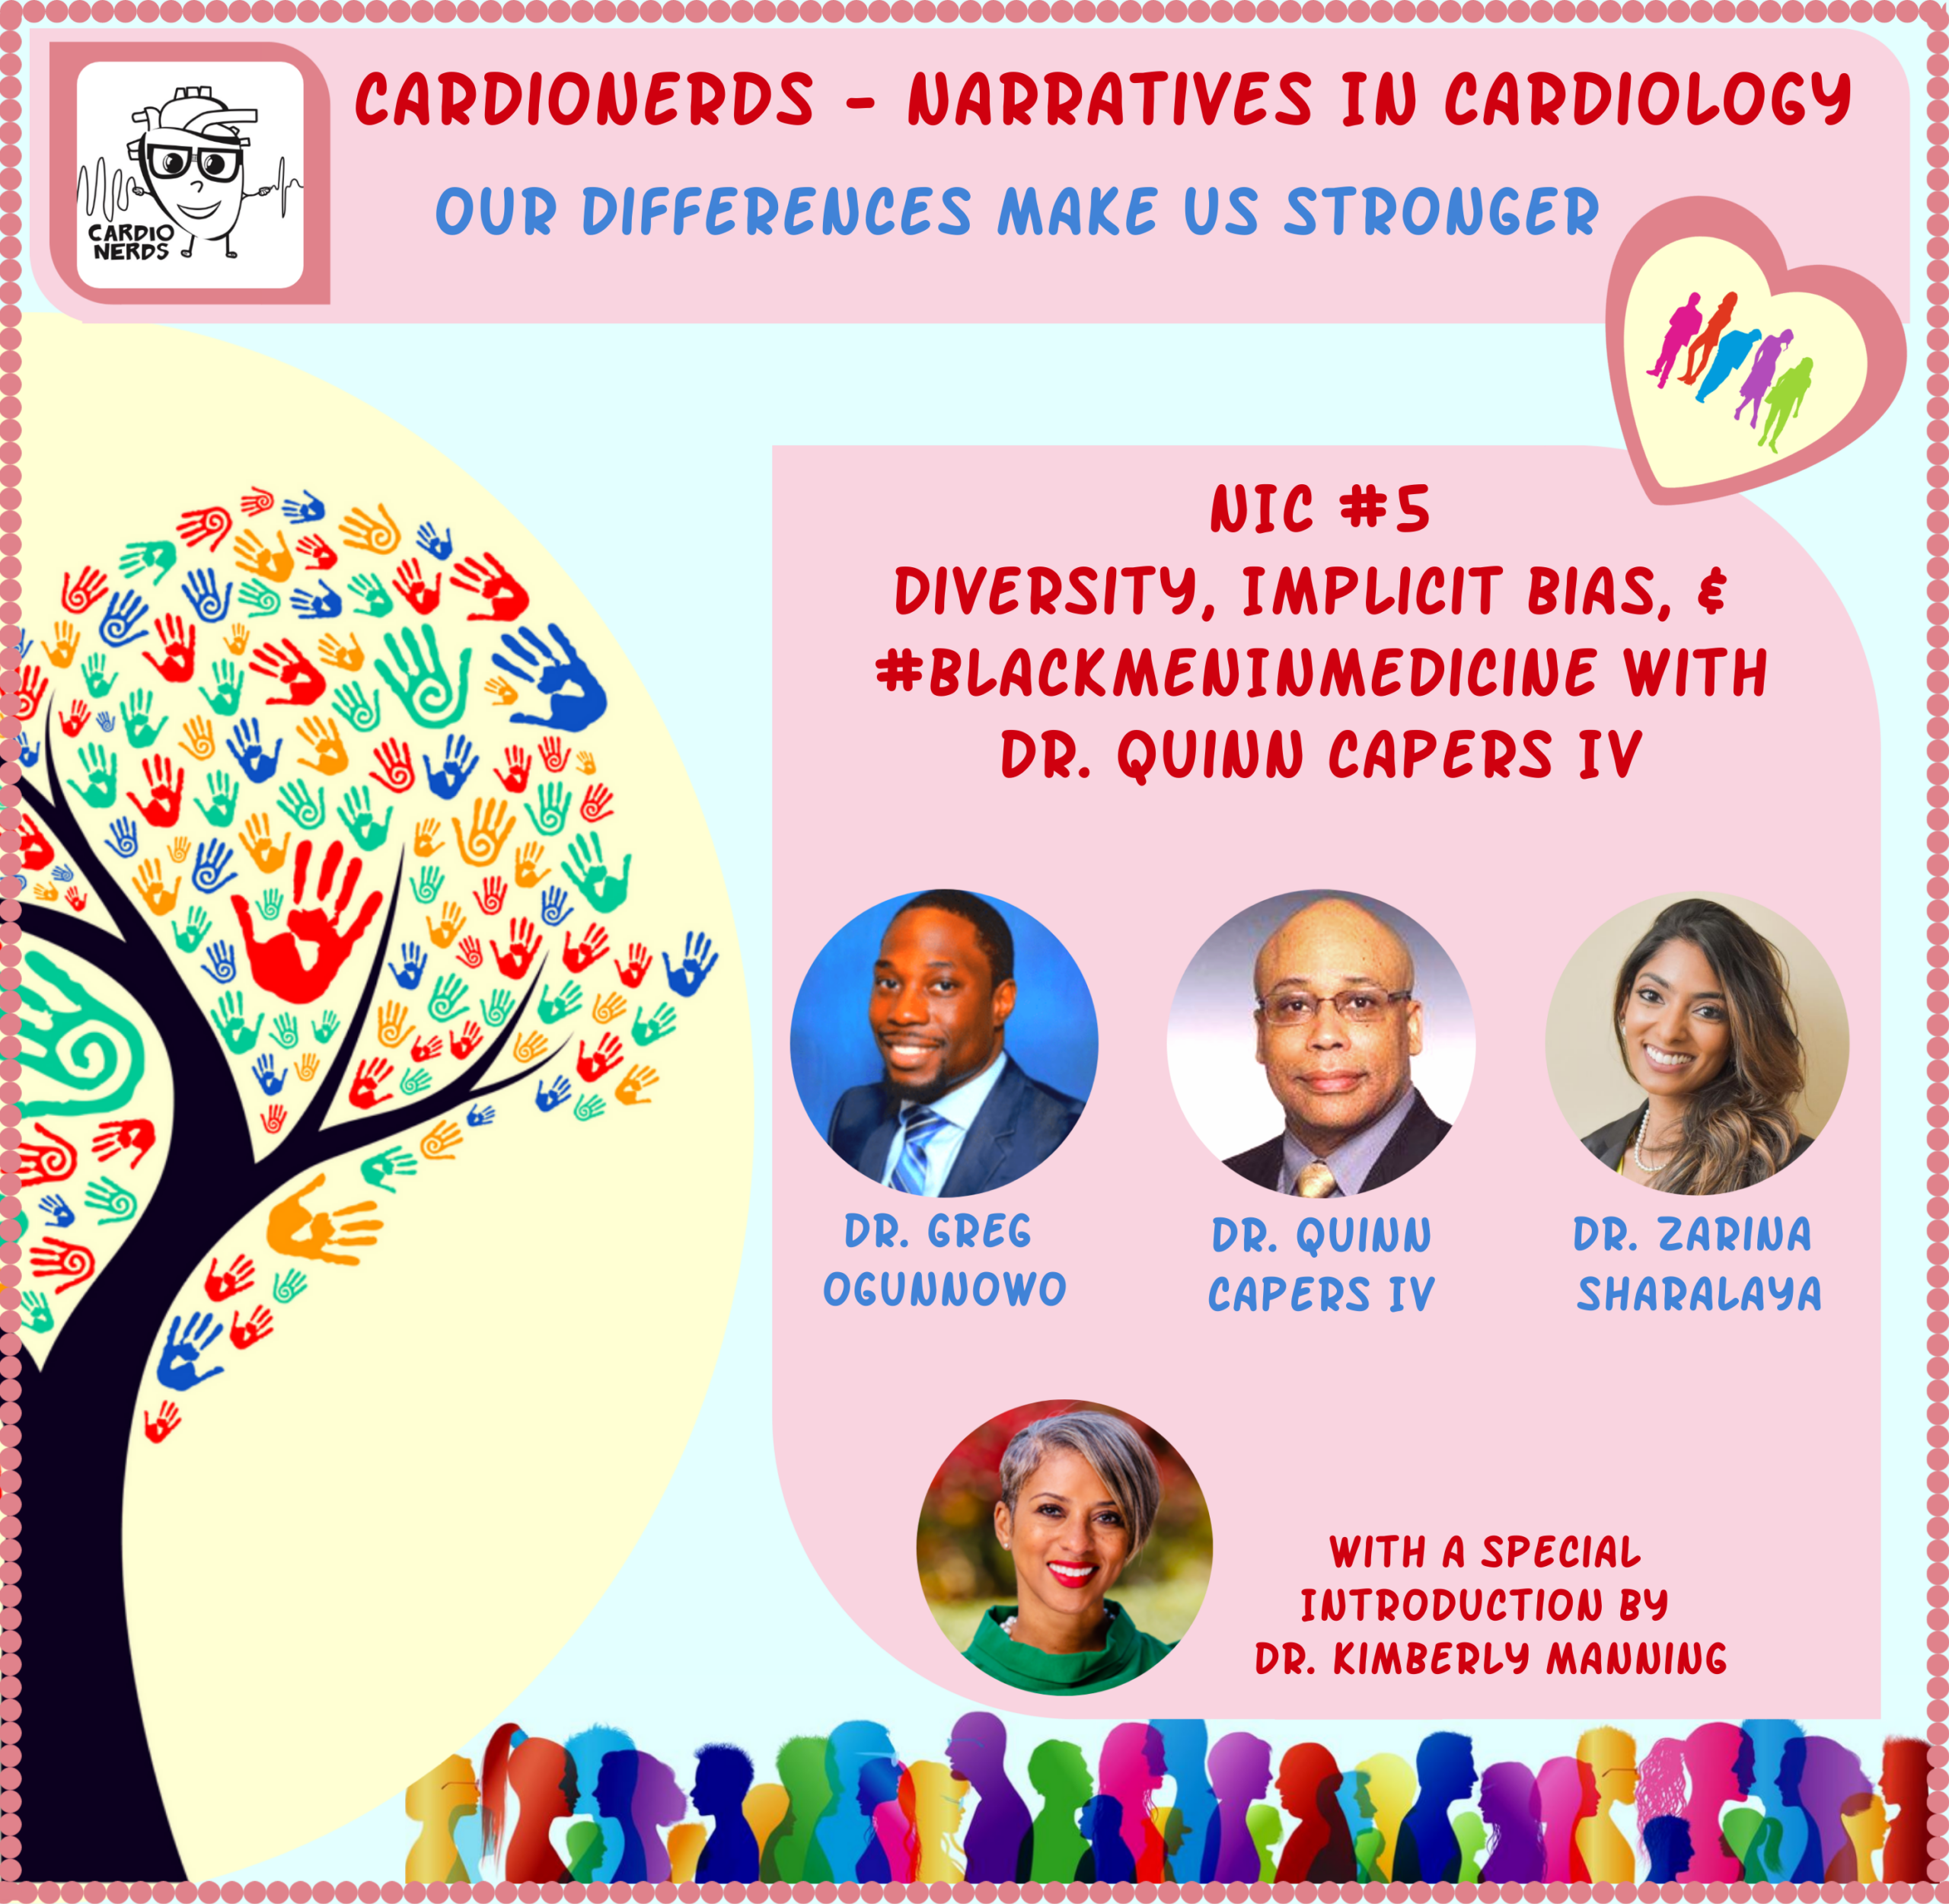 122. Narratives in Cardiology: Diversity, Implicit Bias, and #BlackMenInMedicine with Dr. Quinn Capers IV